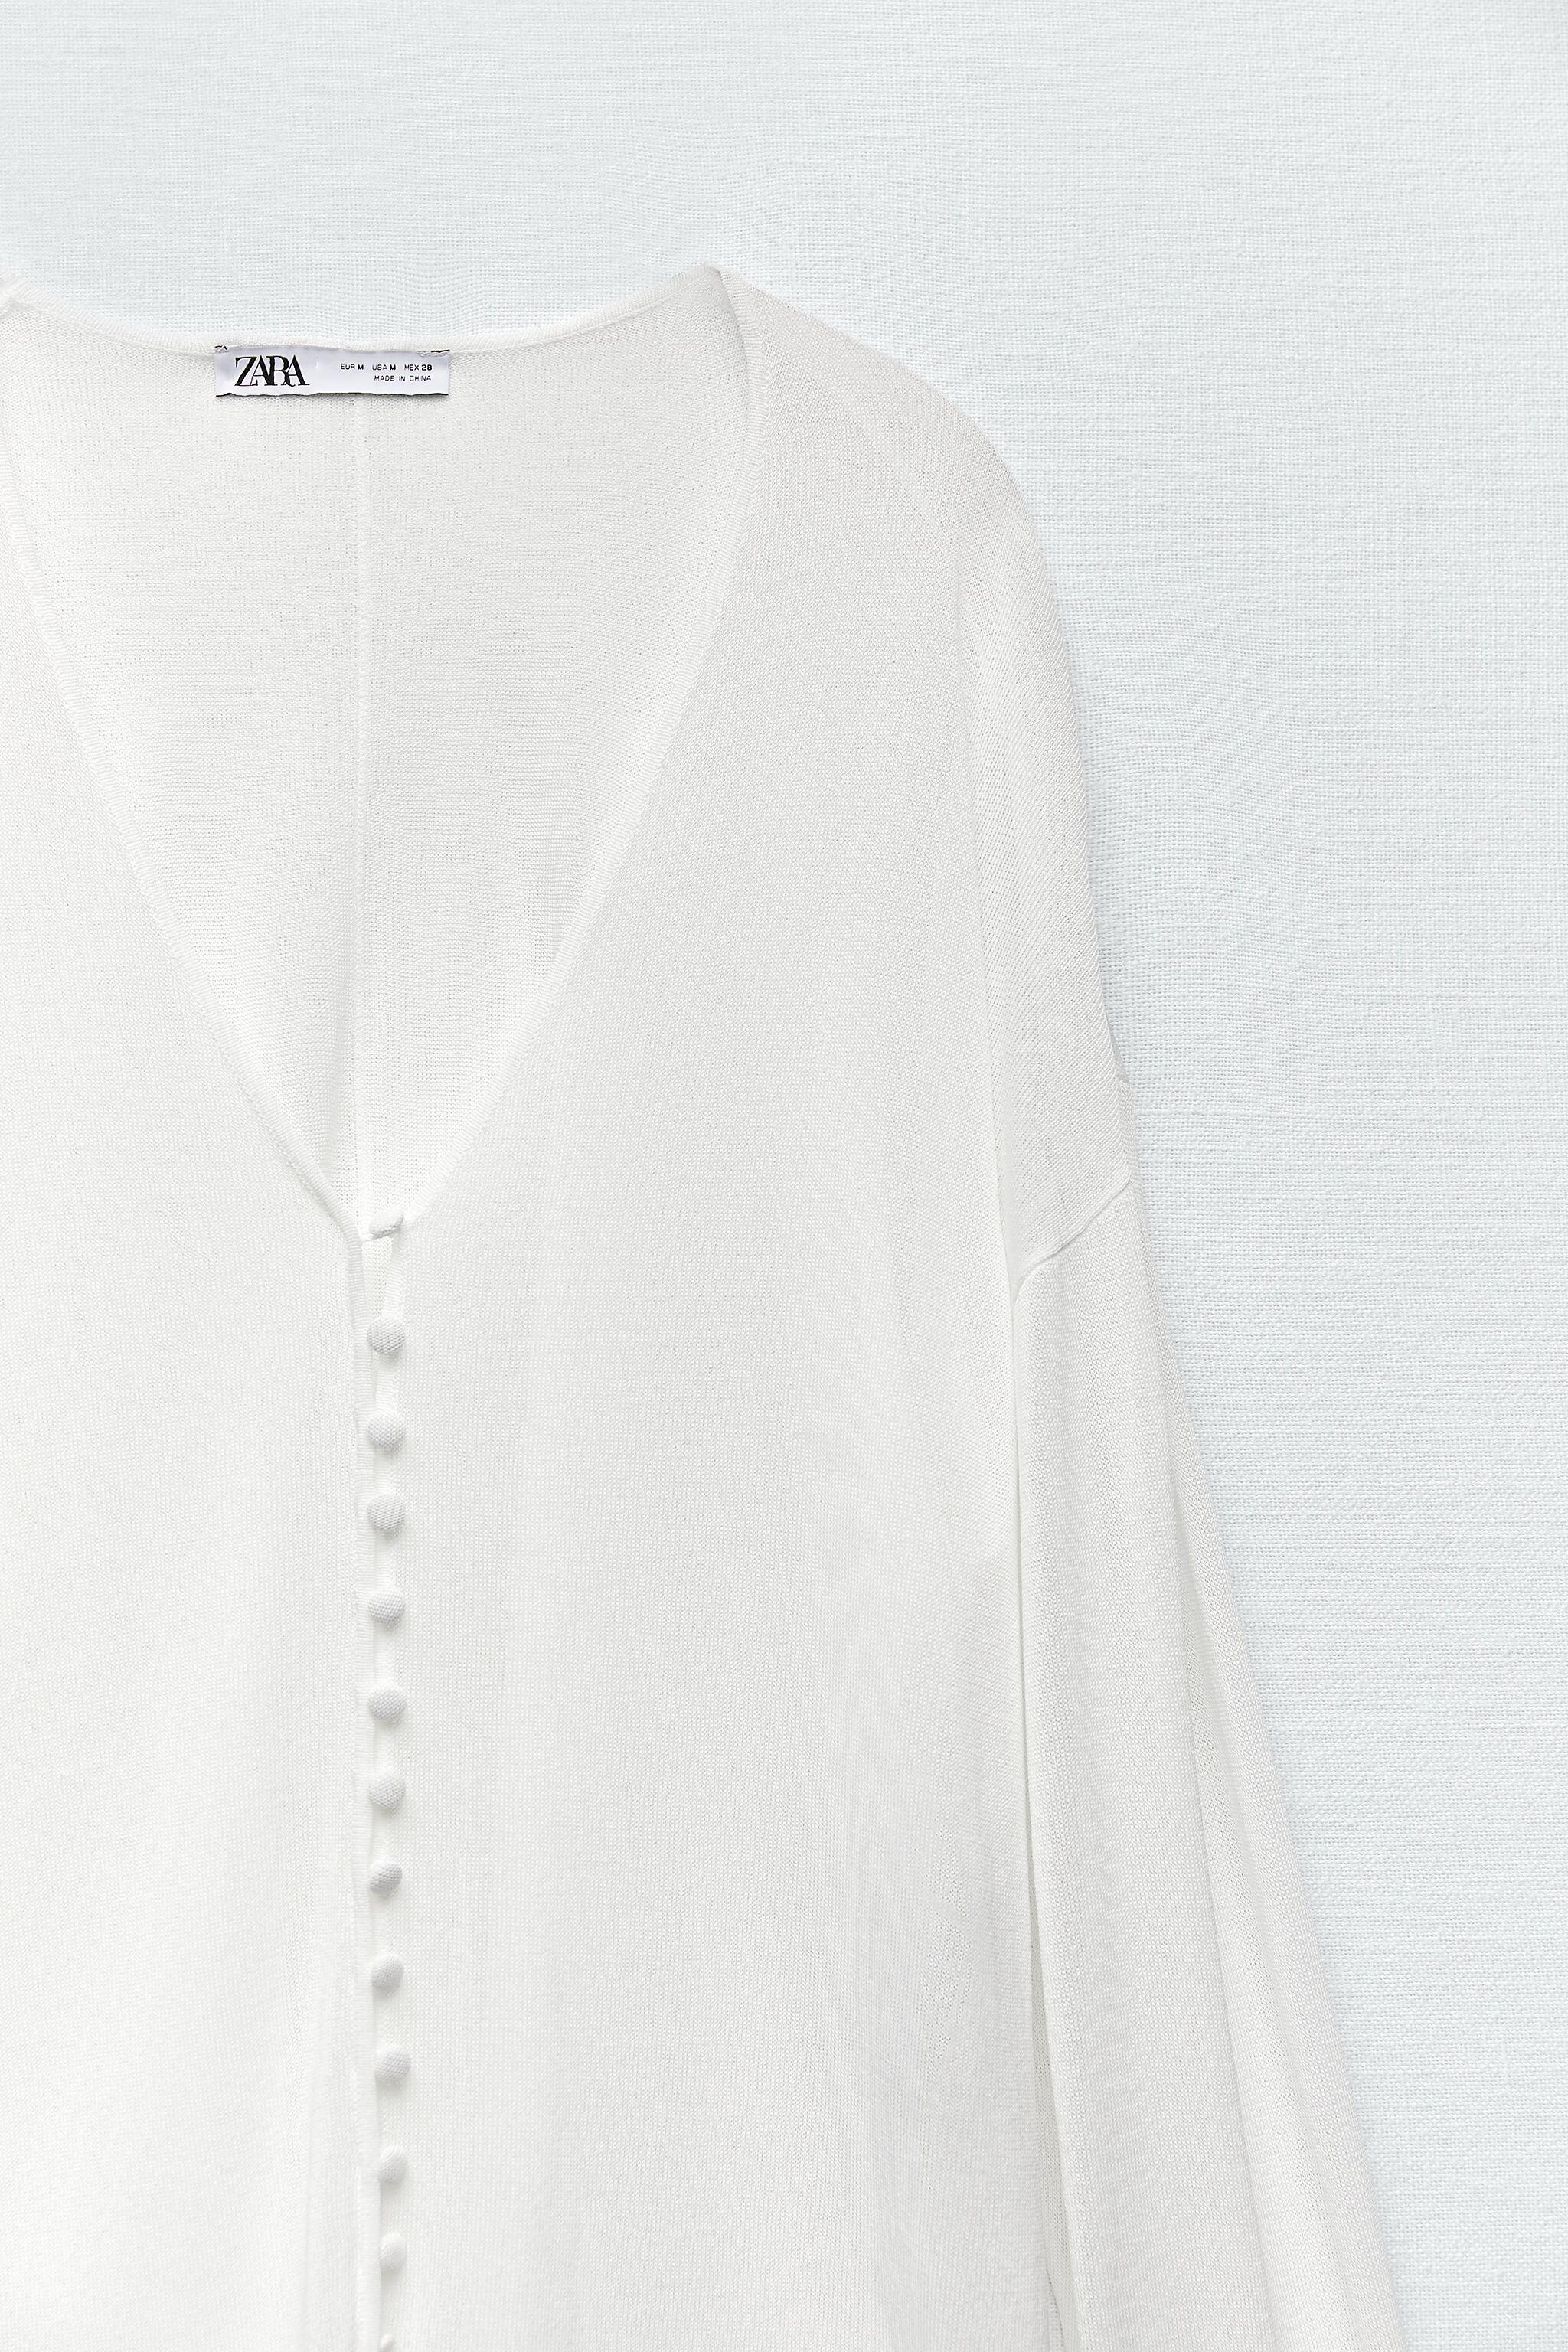 SEMI-SHEER KNIT BLOUSE LIMITED EDITION 6